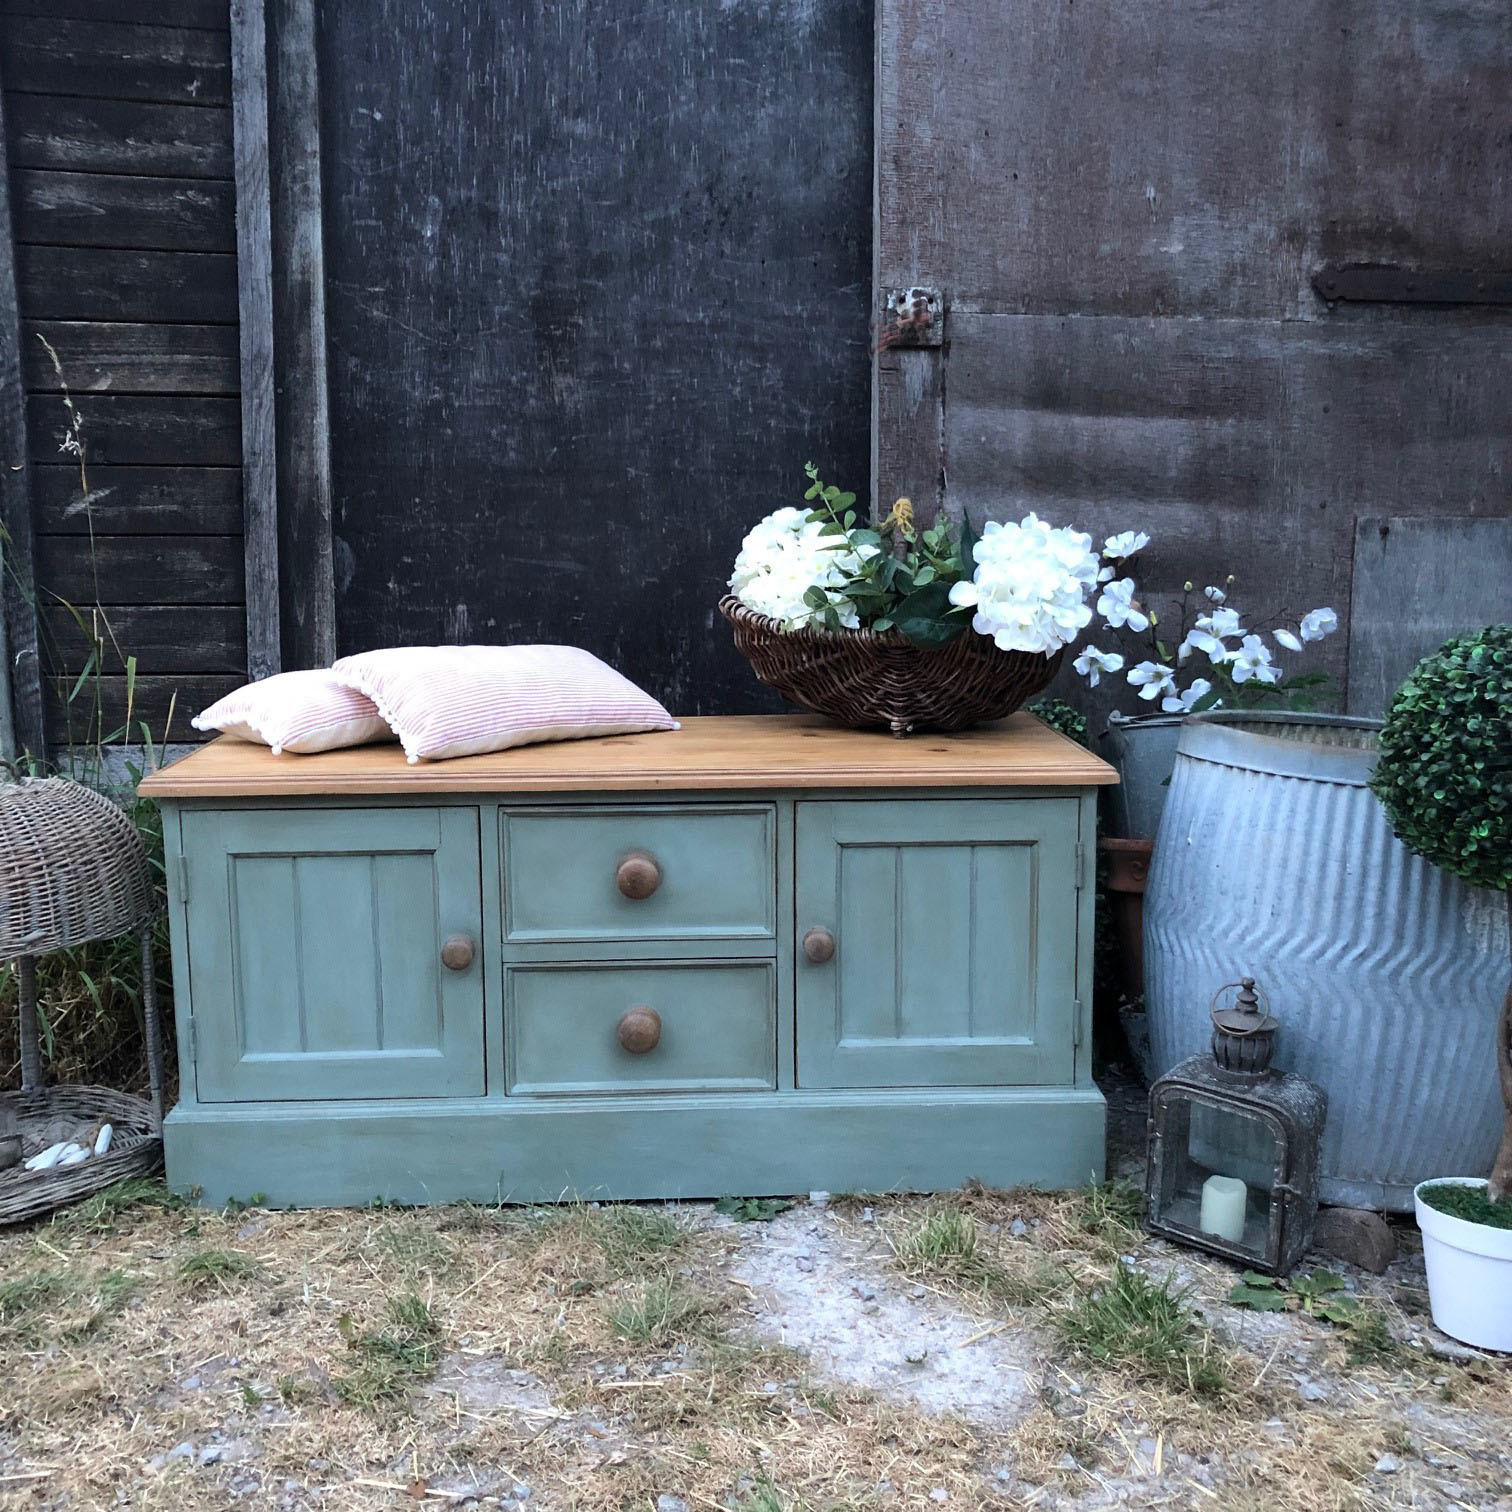 Phenomenal Duck Egg Blue Hand Painted Vintage Pine Country Farmhouse Storage Bench End Of Bed Ottoman Tv Cabinet Machost Co Dining Chair Design Ideas Machostcouk